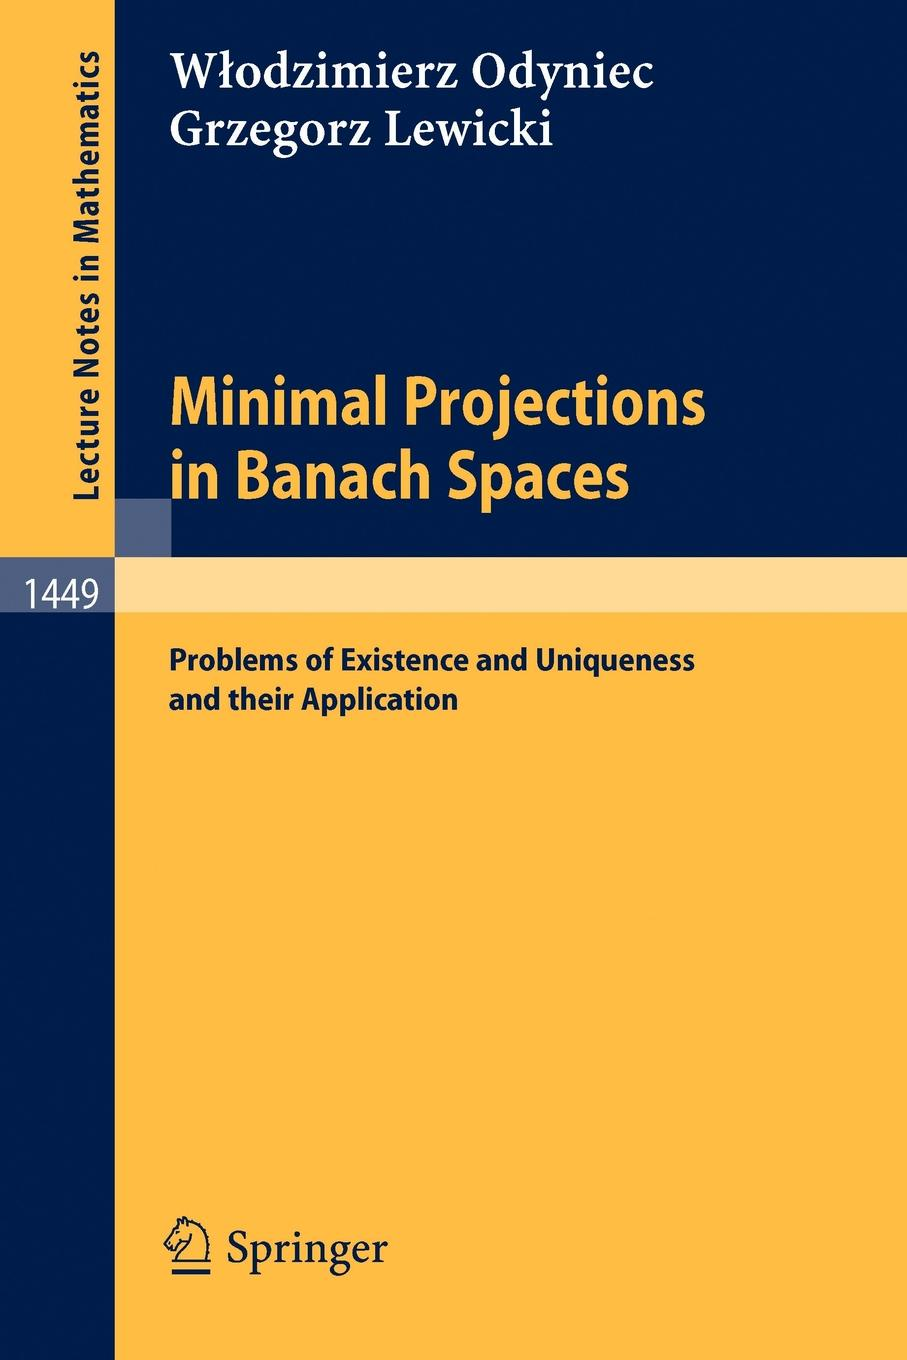 Wlodzimierz Odyniec, Grzegorz Lewicki Minimal Projections in Banach Spaces. Problems of Existence and Uniqueness and their Application недорго, оригинальная цена